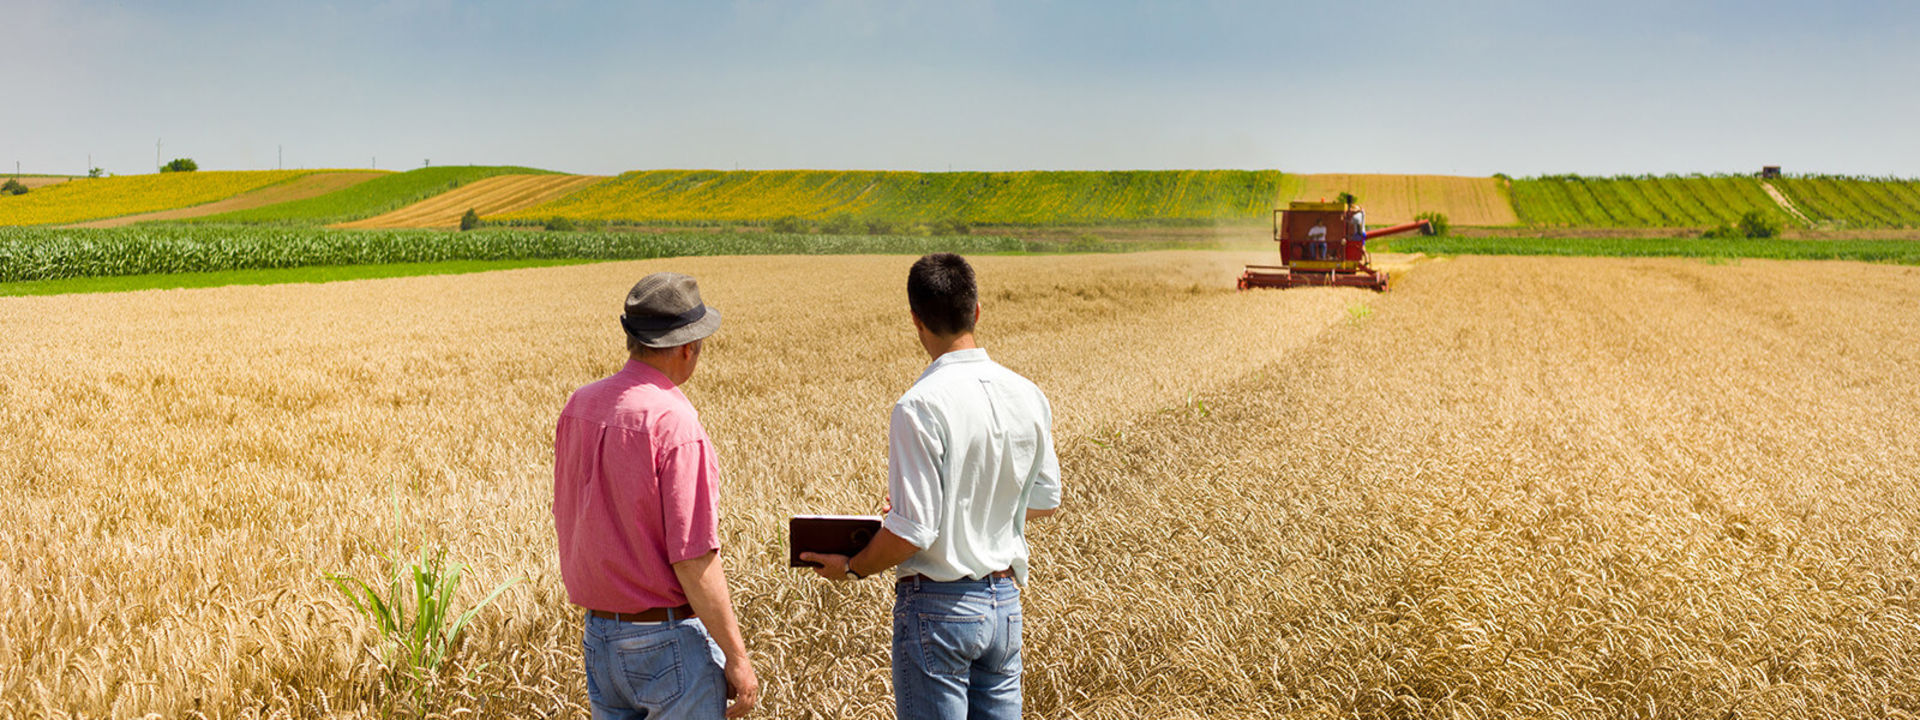 Questions to Ask Before Buying a Farm or Ranch